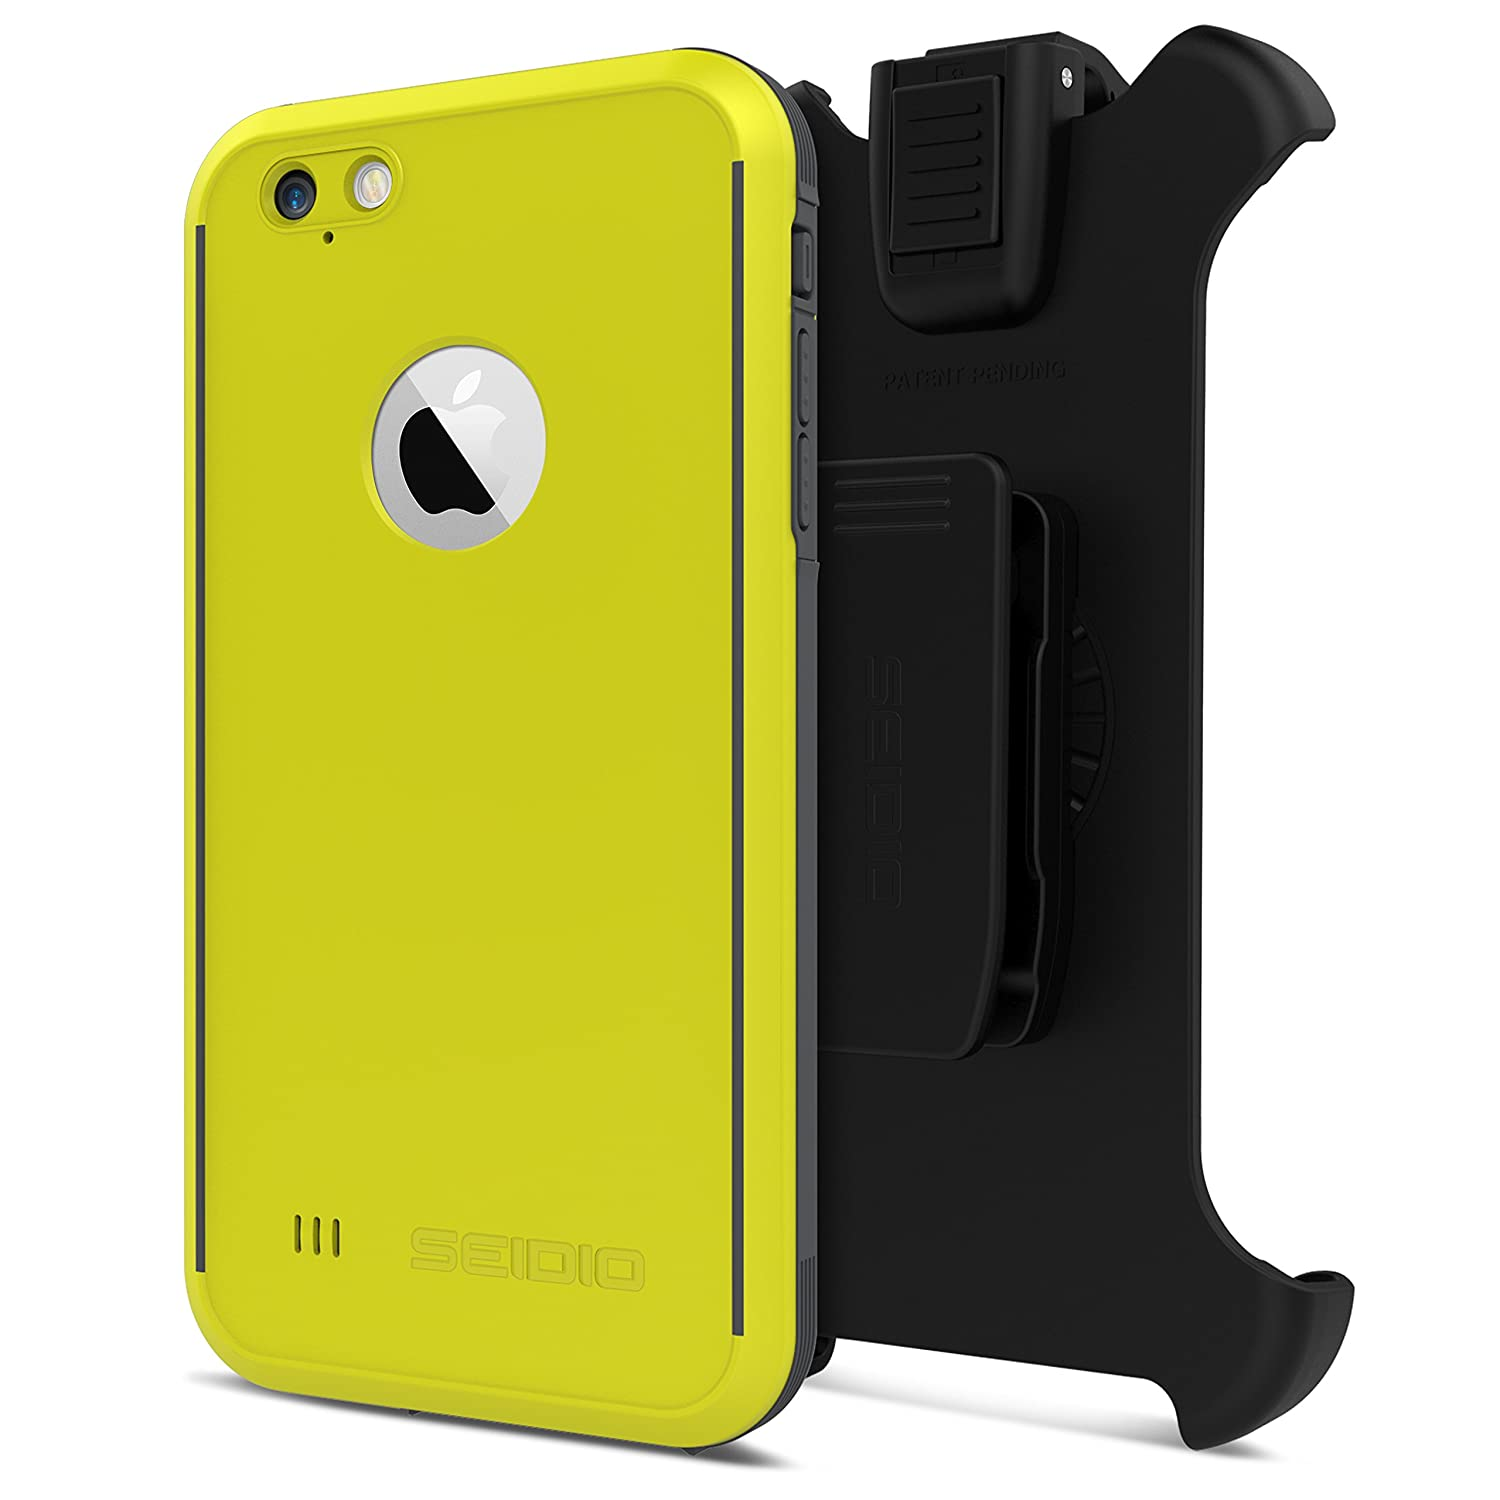 detailed look 041e5 fd3cf Seidio OBEX Waterproof Case and Removable Belt-Clip Holster Combo for the  iPhone 6 Plus/6s Plus [Drop Proof] - Retail Packaging - Yellow/Gray